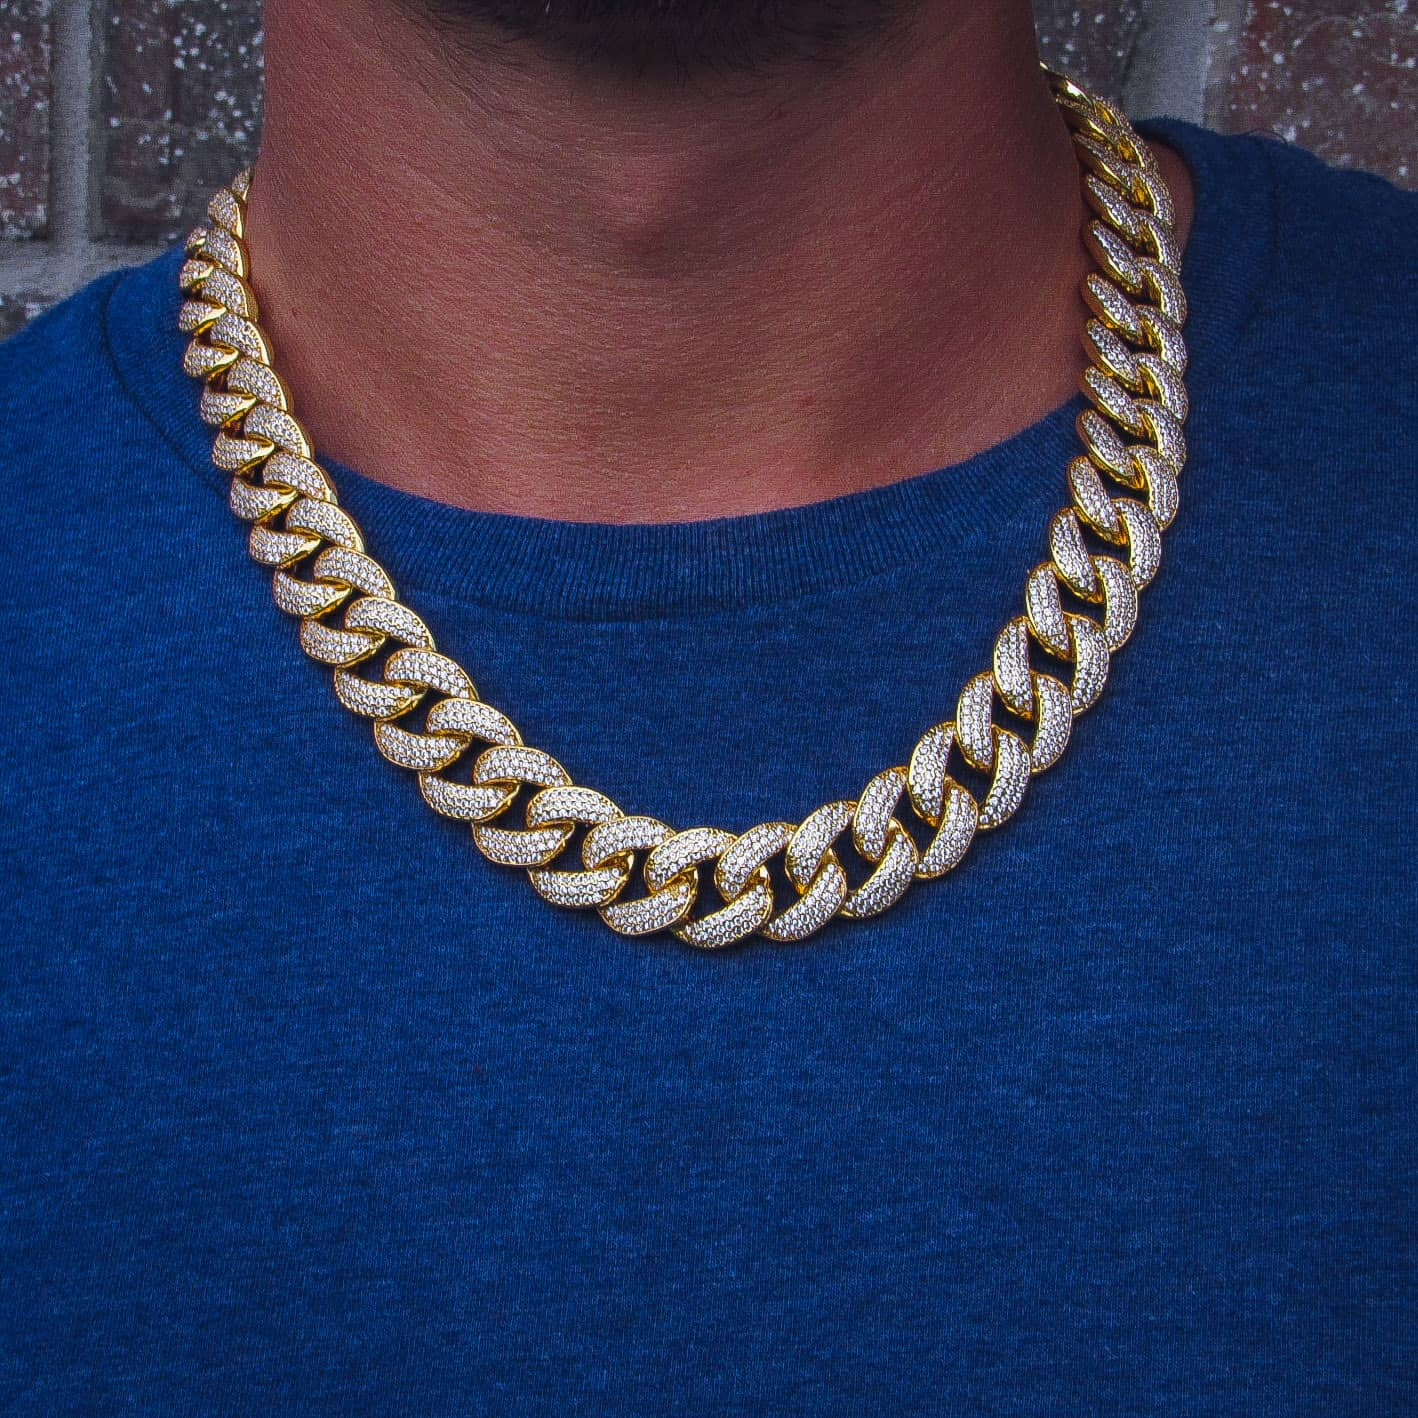 19mm Three Row Cuban Link Chain Yellow Gold